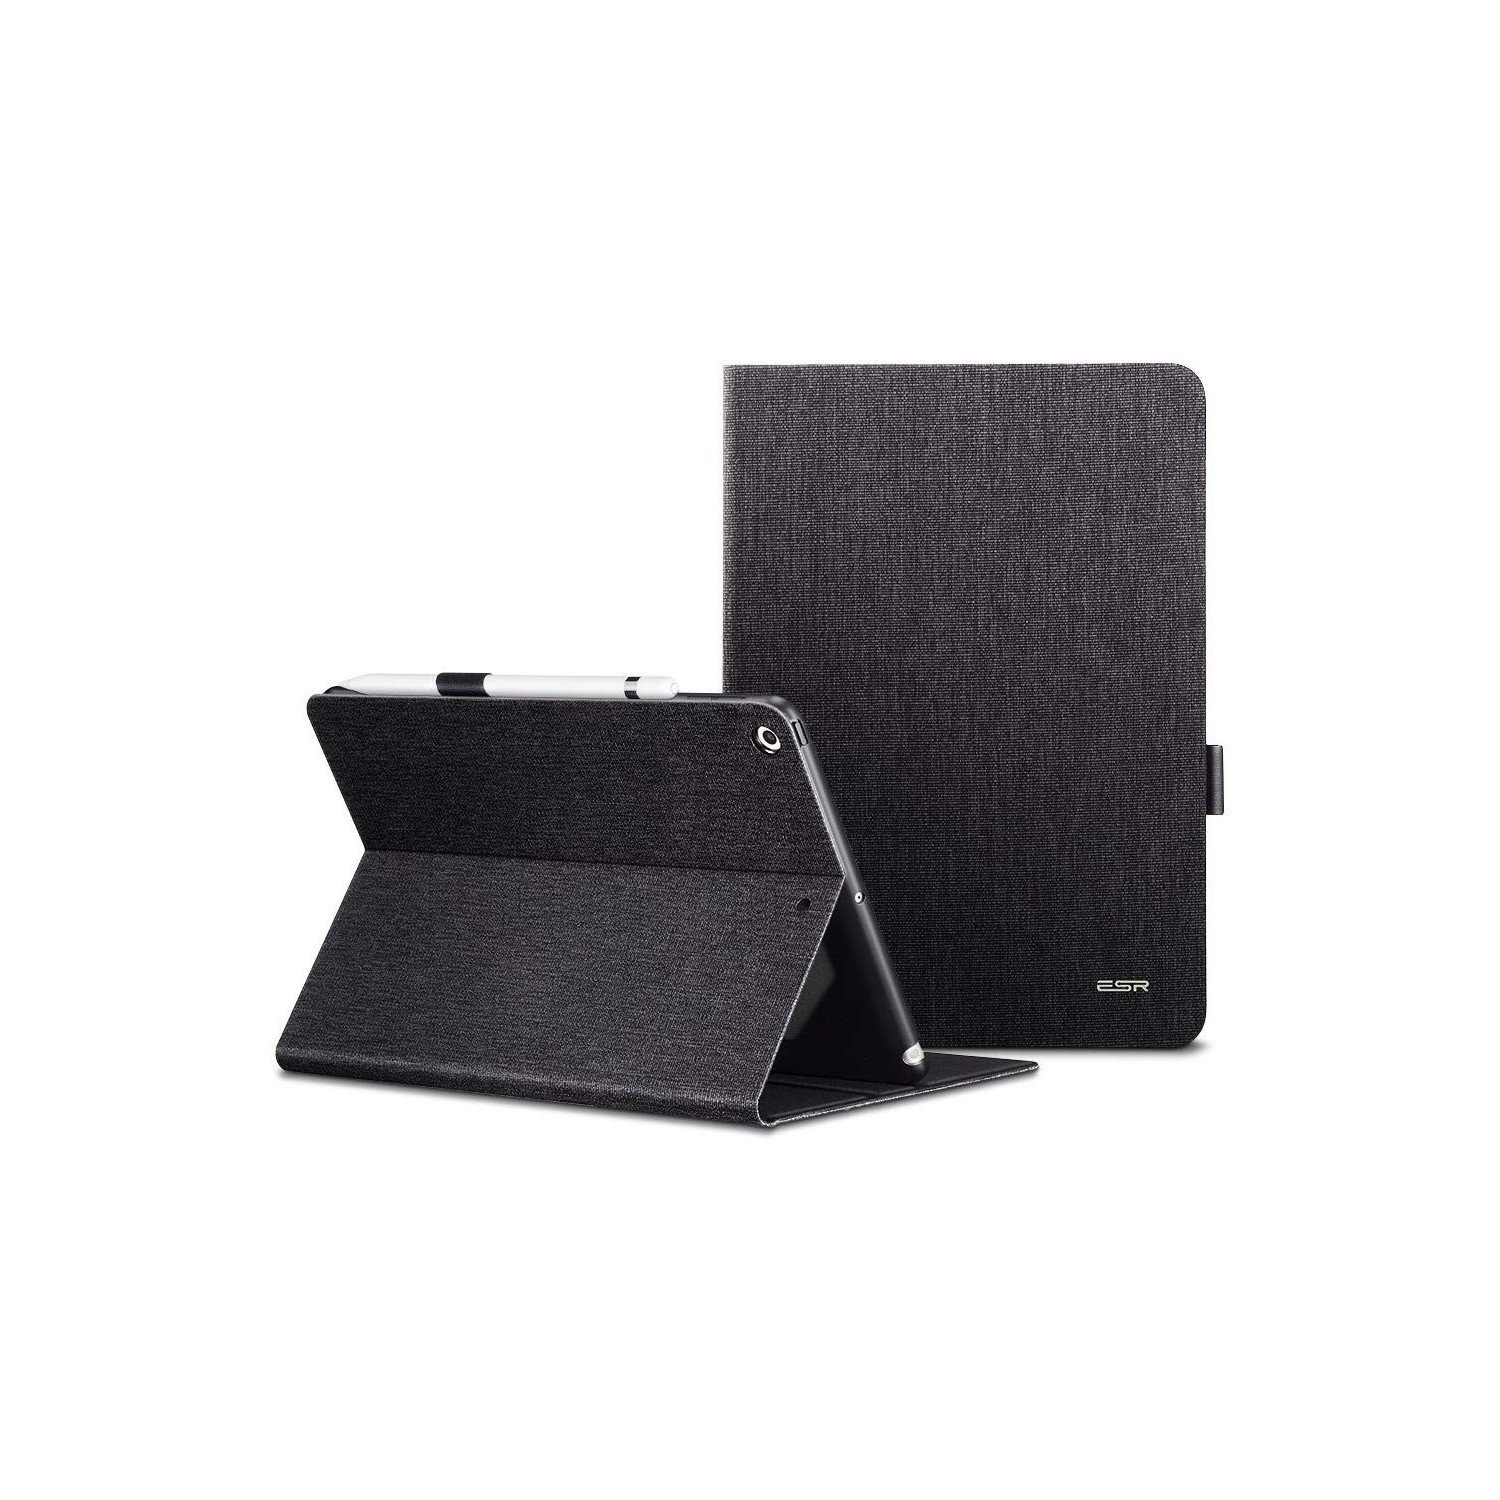 Case - ESR Urban case for iPad 9.7 Black